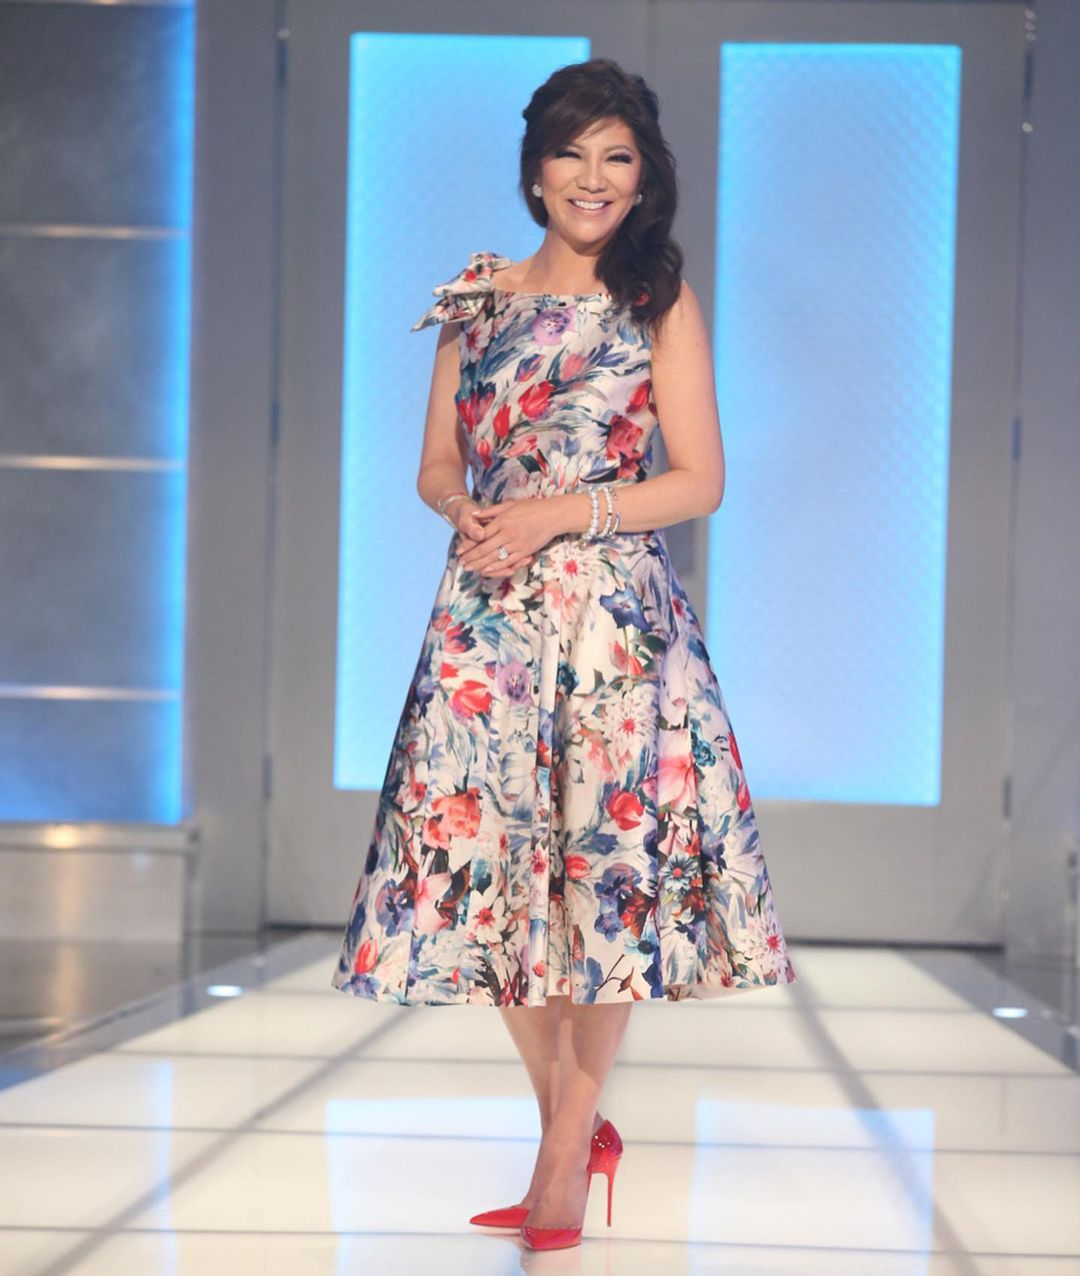 Julie Chen Big Brother YouTube